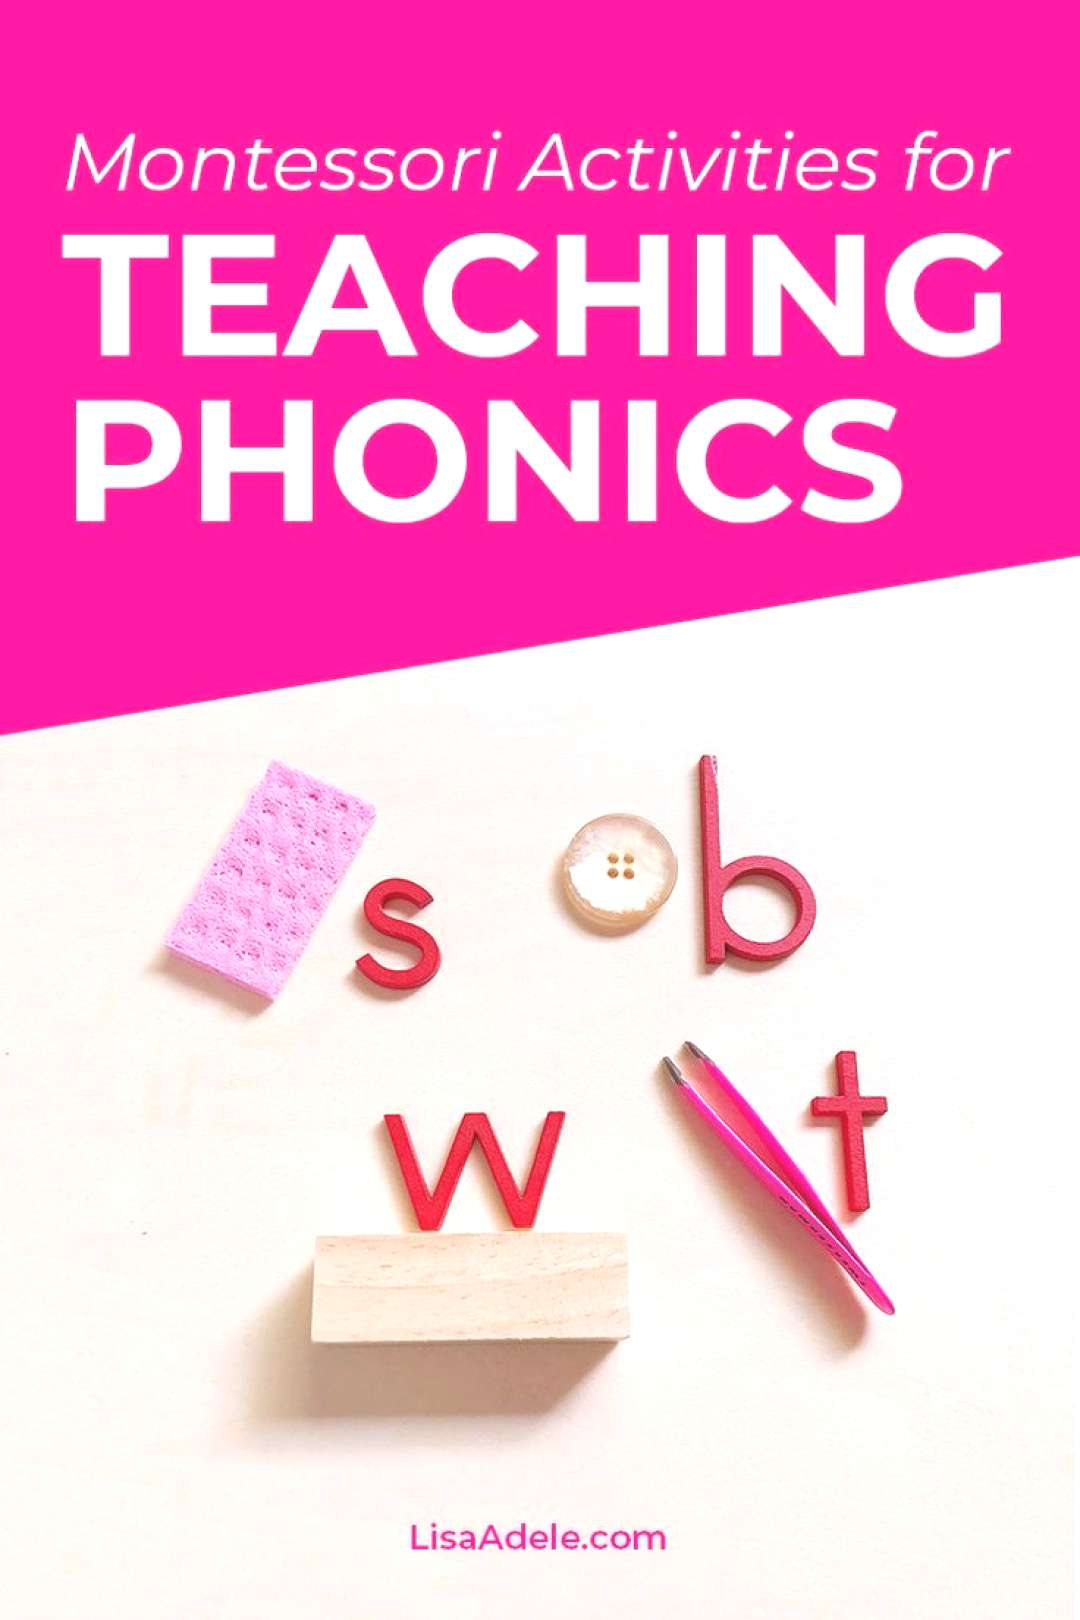 Montessori Activities for Teaching Phonics Learn the 4-step sequence for teaching phonics to your p